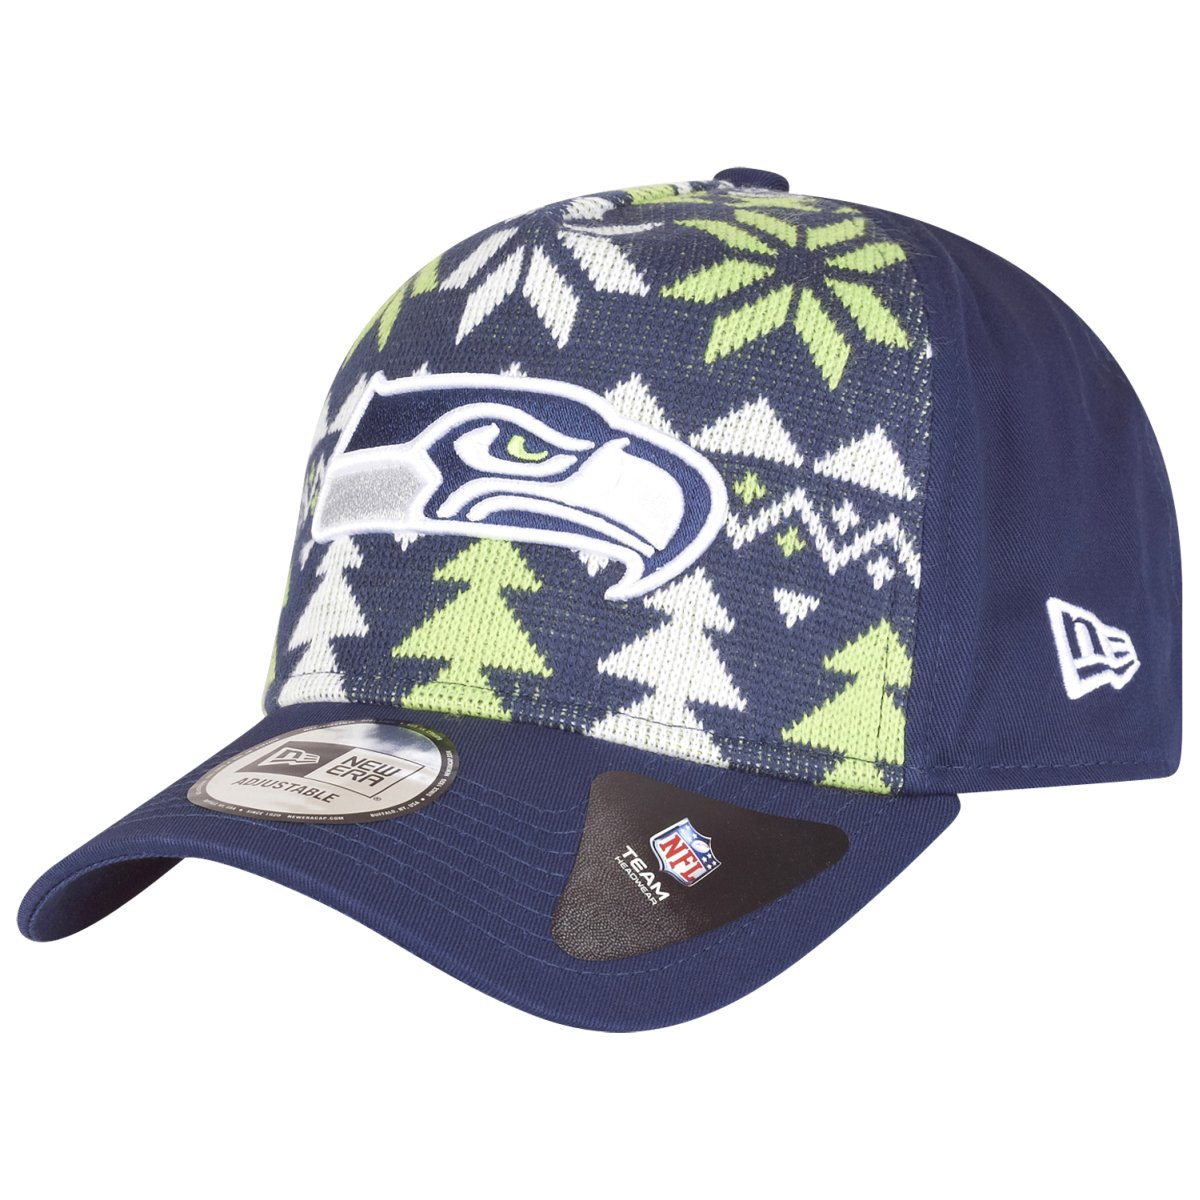 New Era Christmas Jumper Trucker Cap - NFL Seattle Seahawks - One Size 7bf9fb06cffa